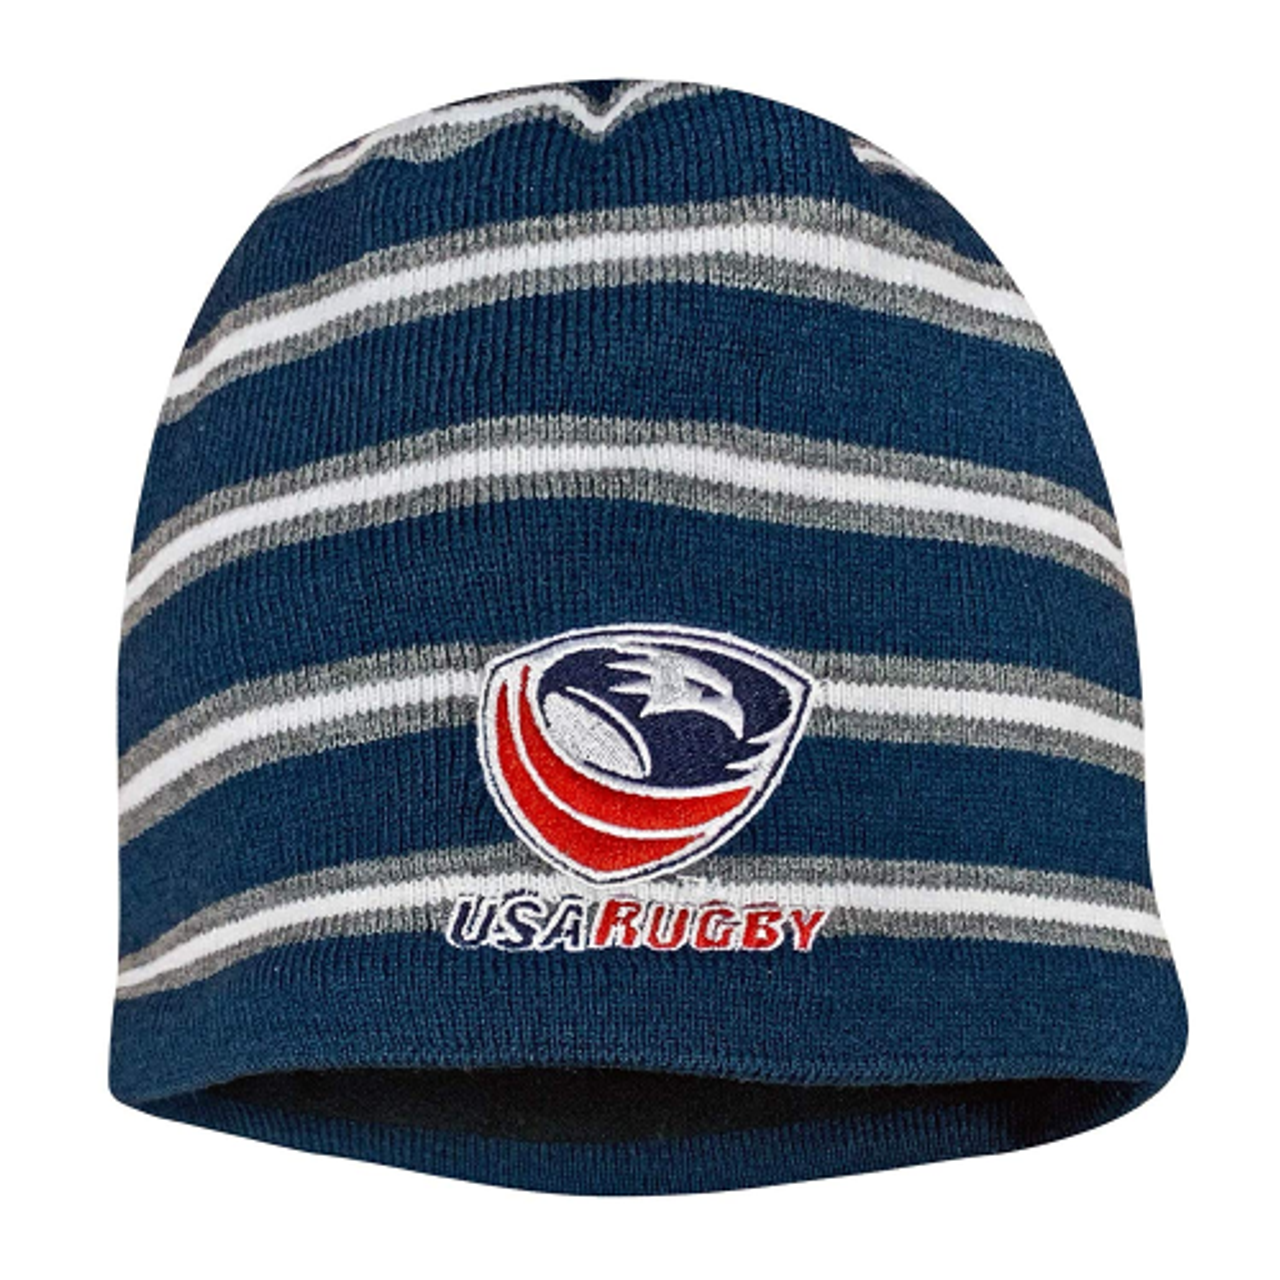 USA Rugby CCC Fleece-Lined Beanie, Navy